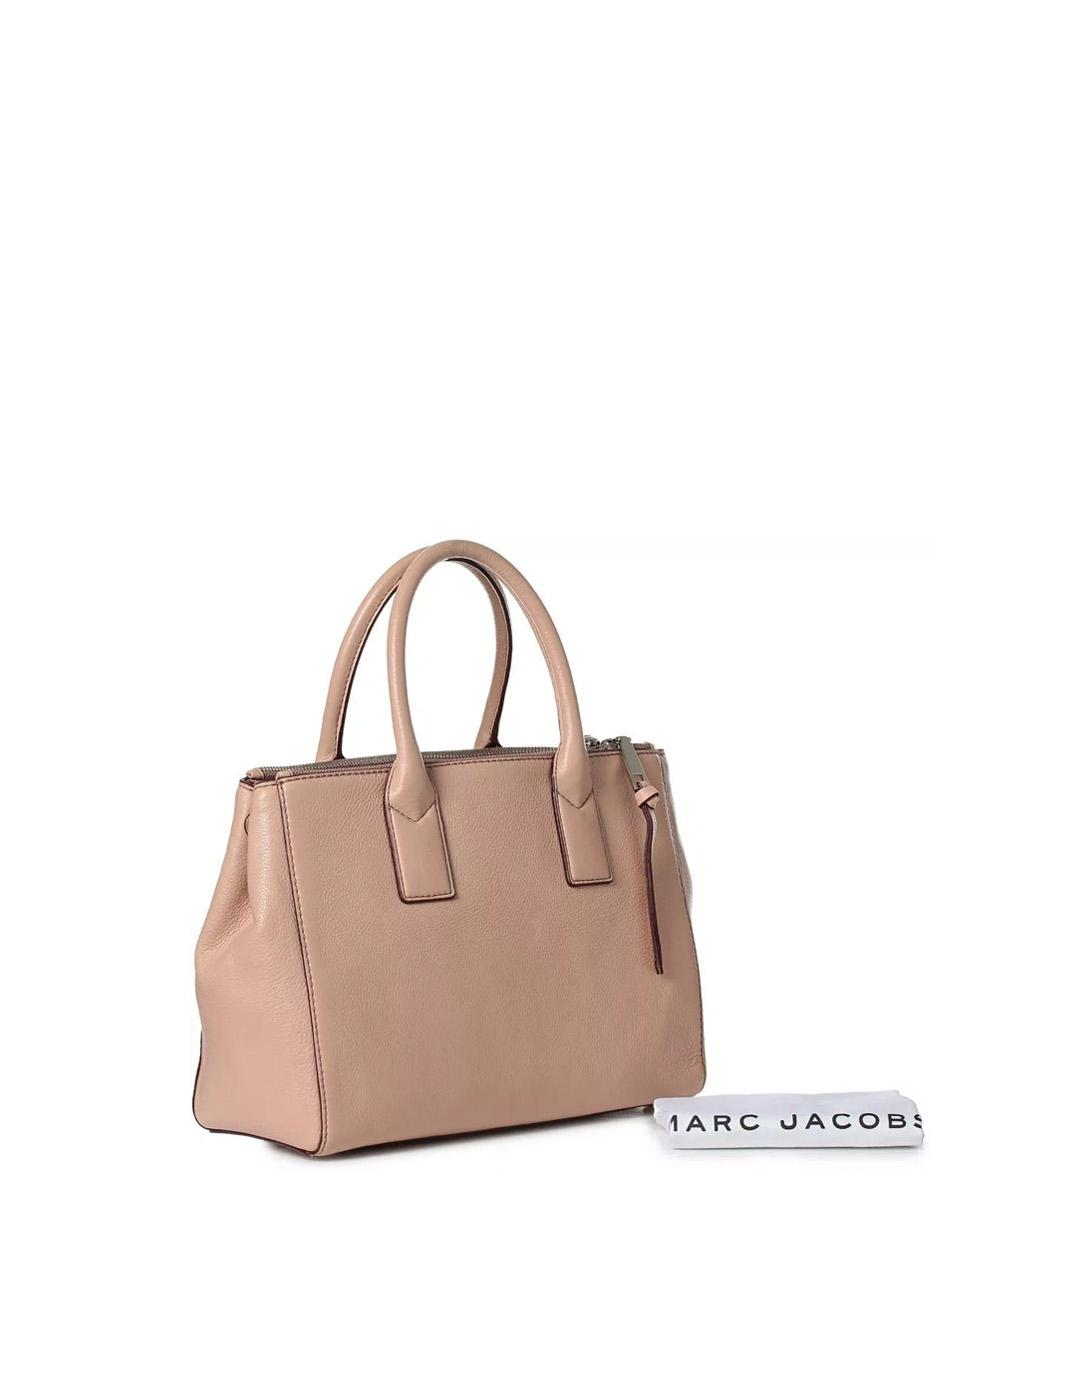 Bolso Marc Jacobs beige Recruit Tote Bag